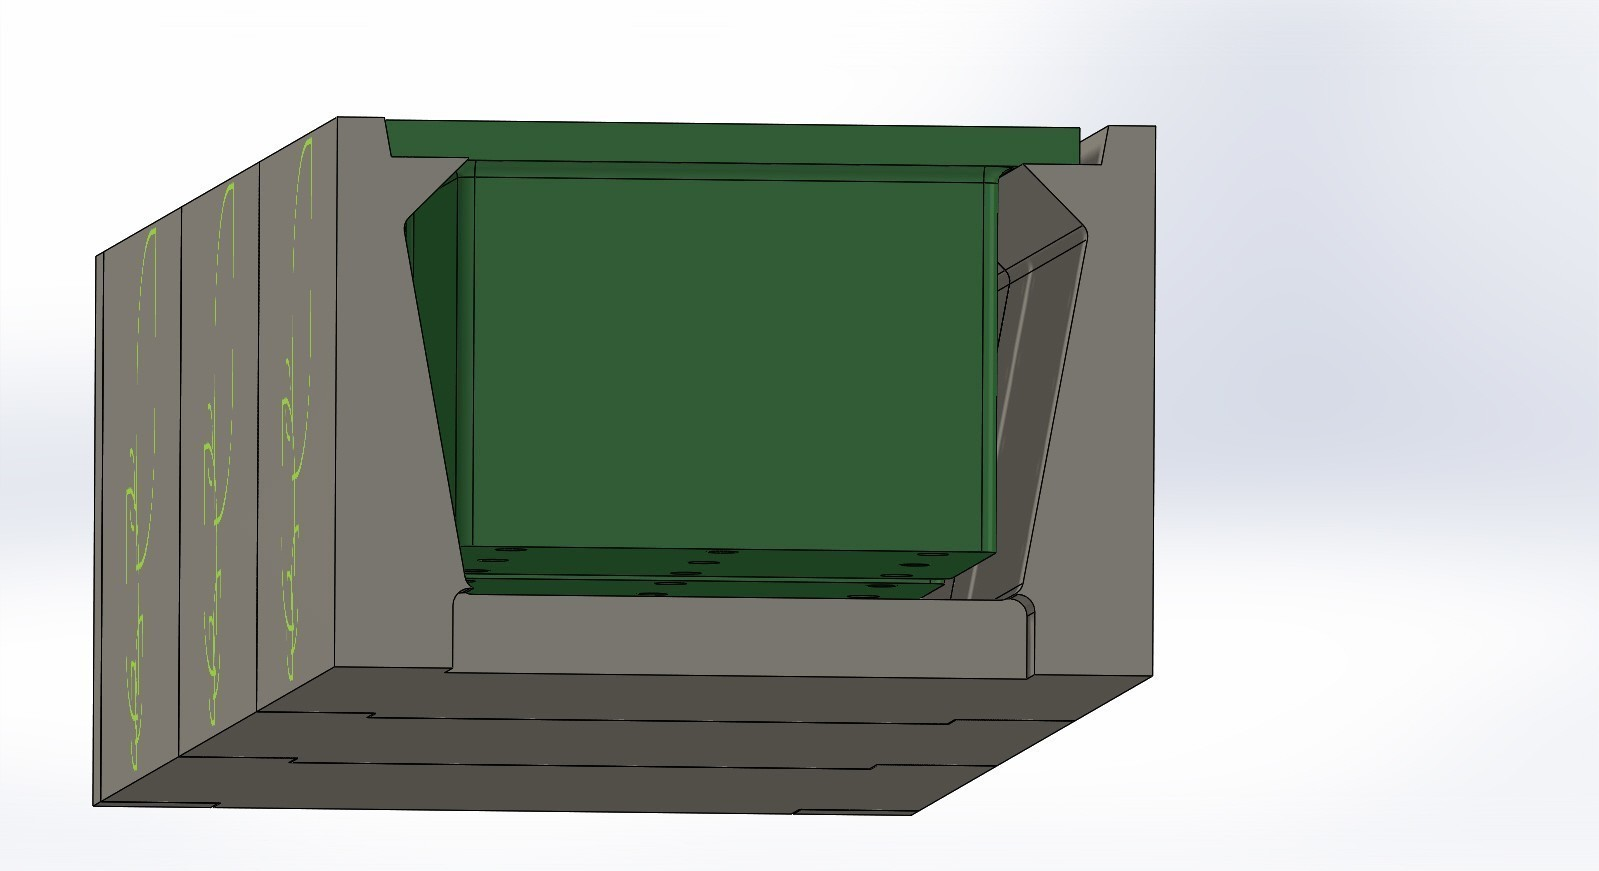 modular plant pot holder recycling assembly 3.JPG Download free STL file Modular Plant Holding System with Water recycling • 3D print model, AAMS